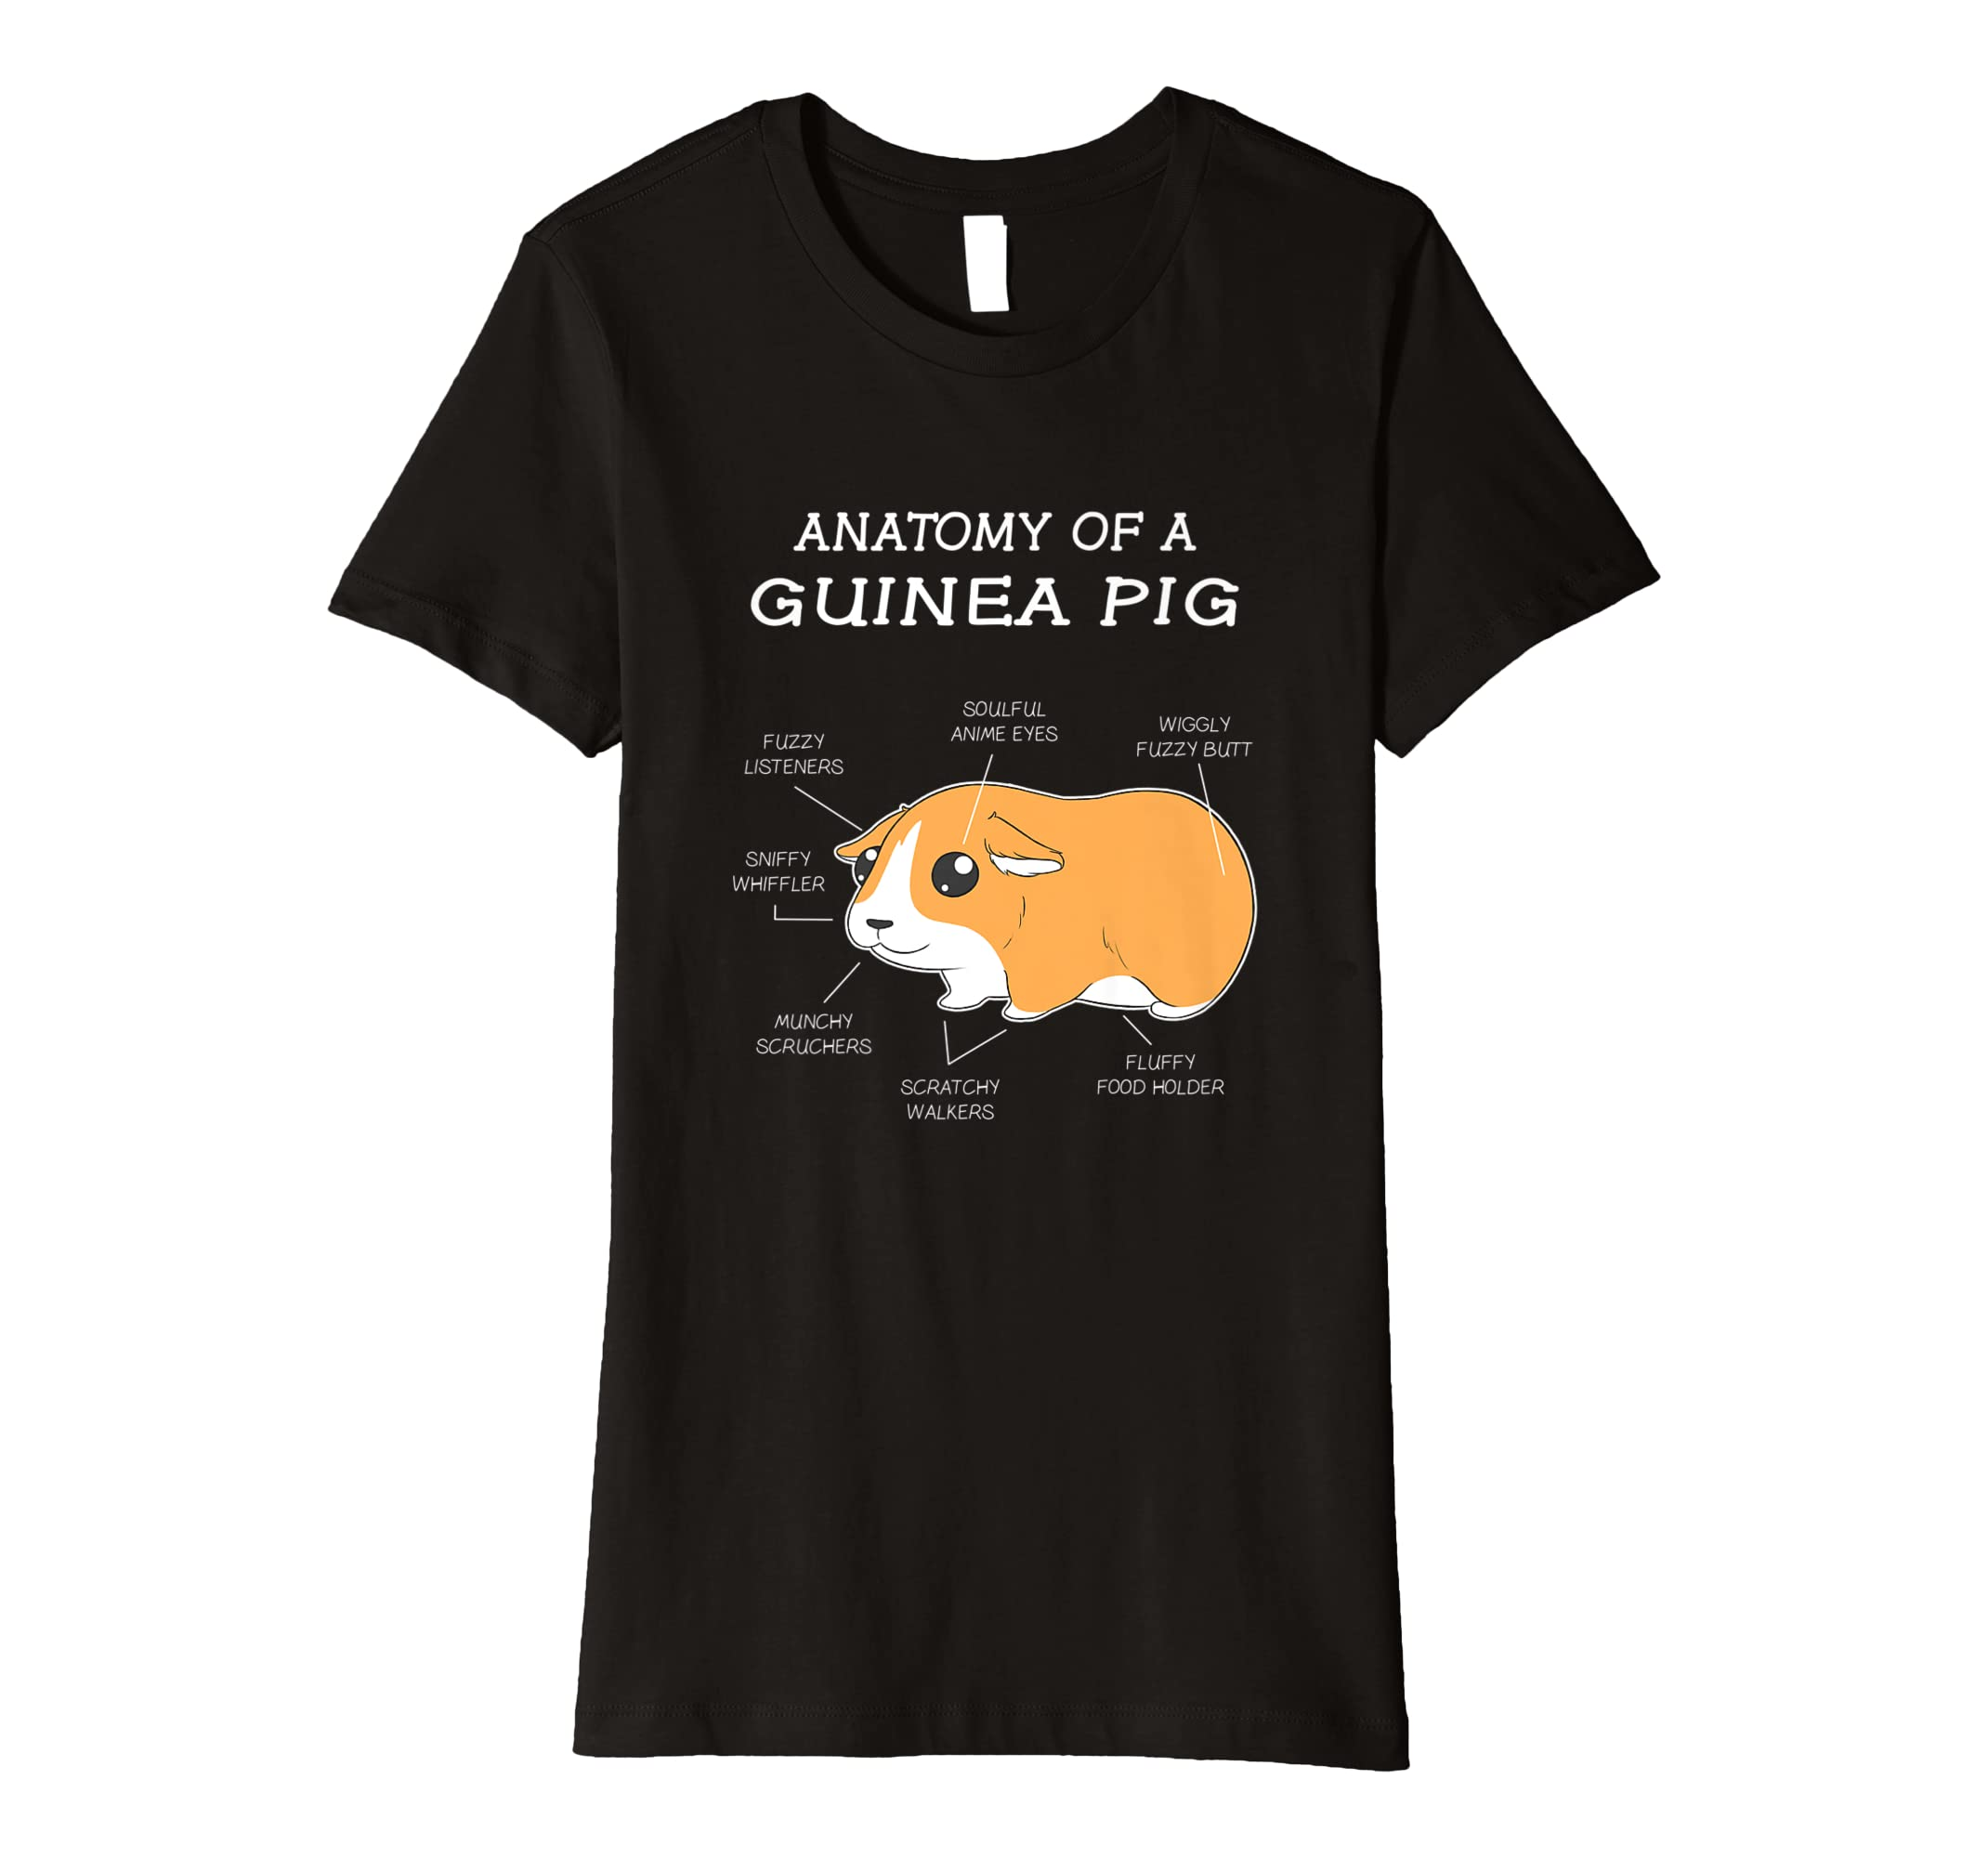 Amazon Anatomy Of A Guinea Pig Funny Chubby Pet T Shirt Clothing